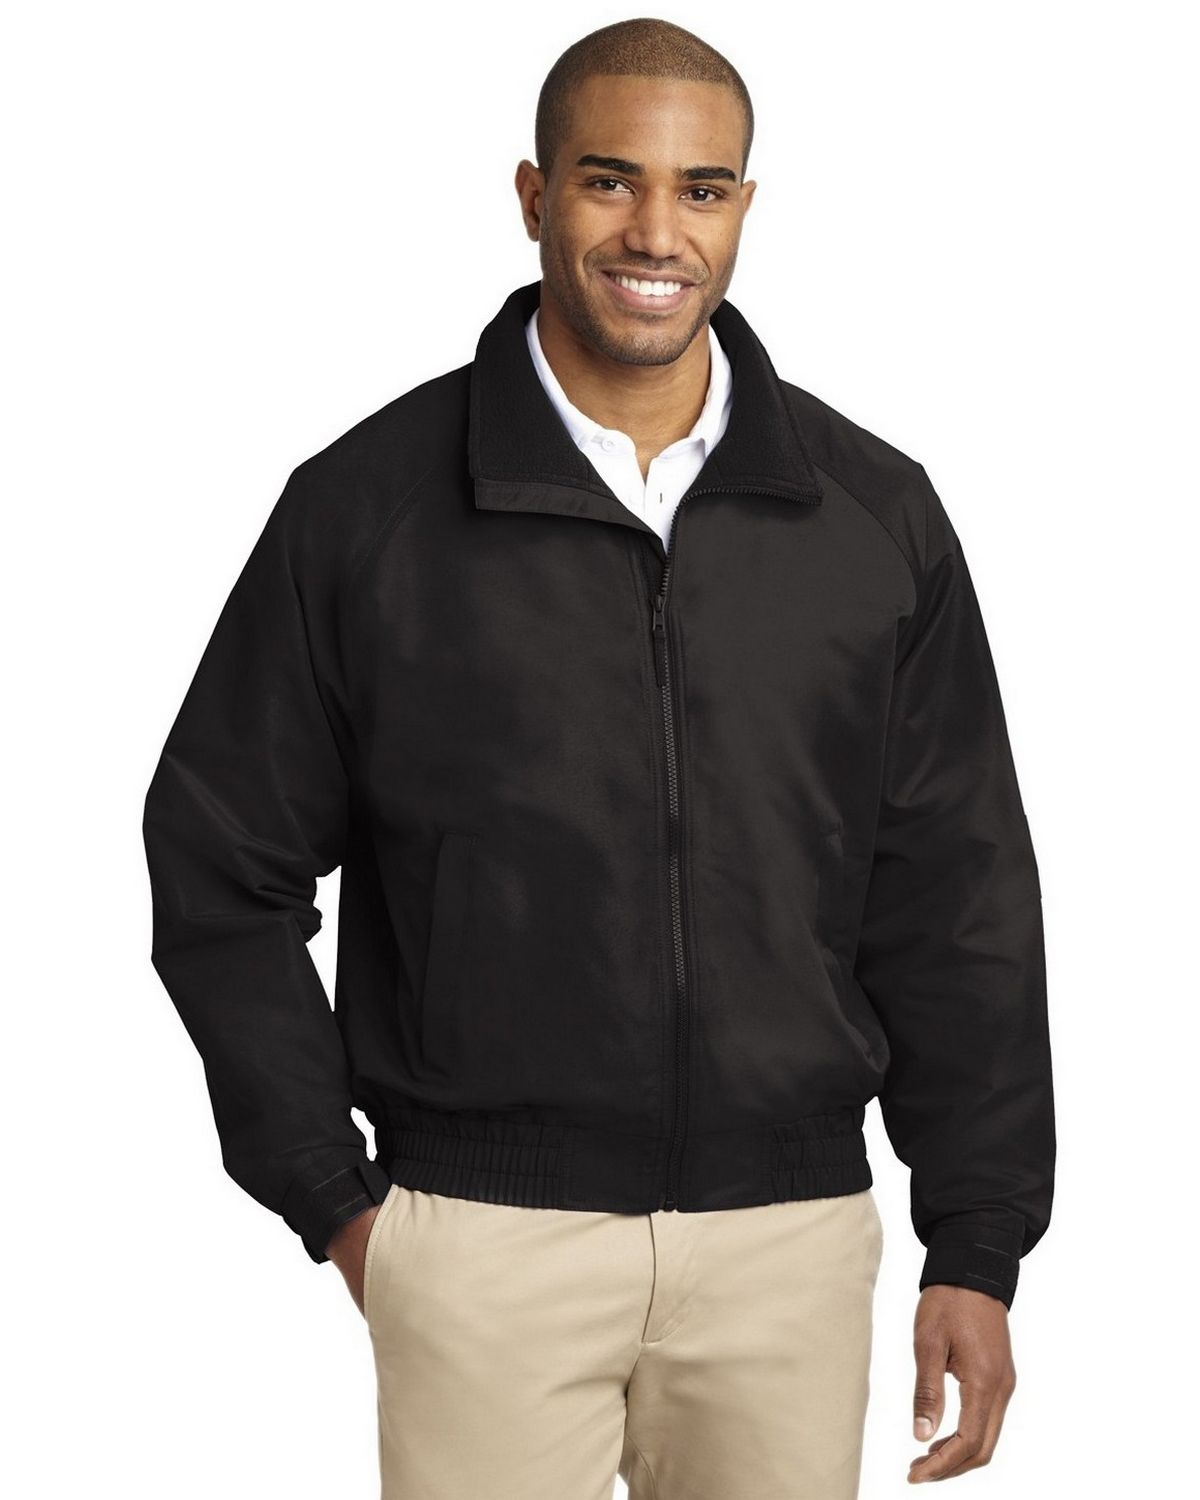 Port Authority J329 Lightweight Charger Jacket - True Black - L J329